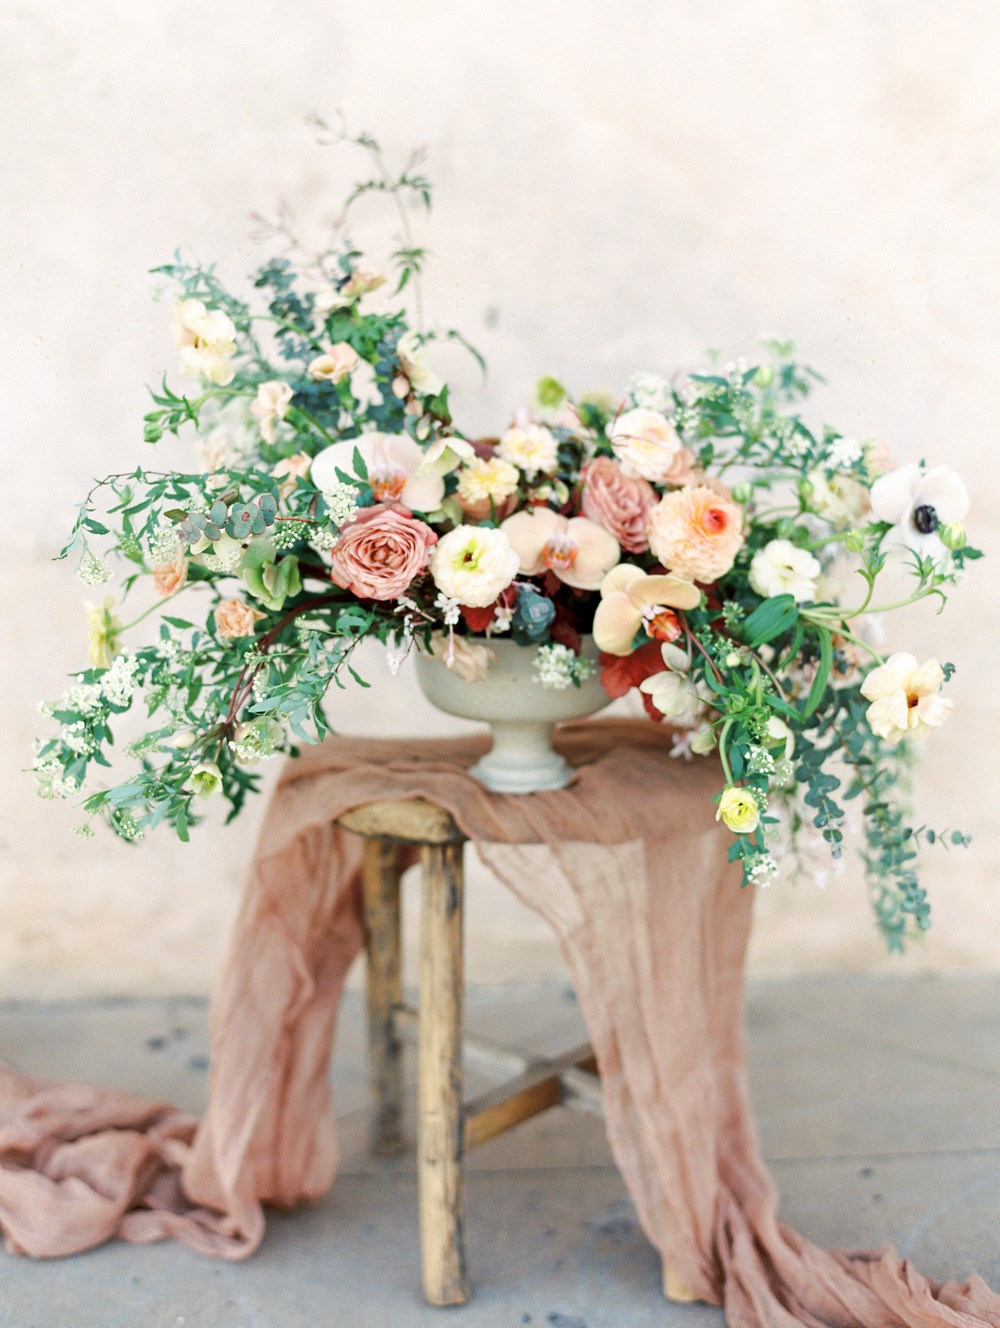 Black Tie Wedding Style with Autumnal Florals